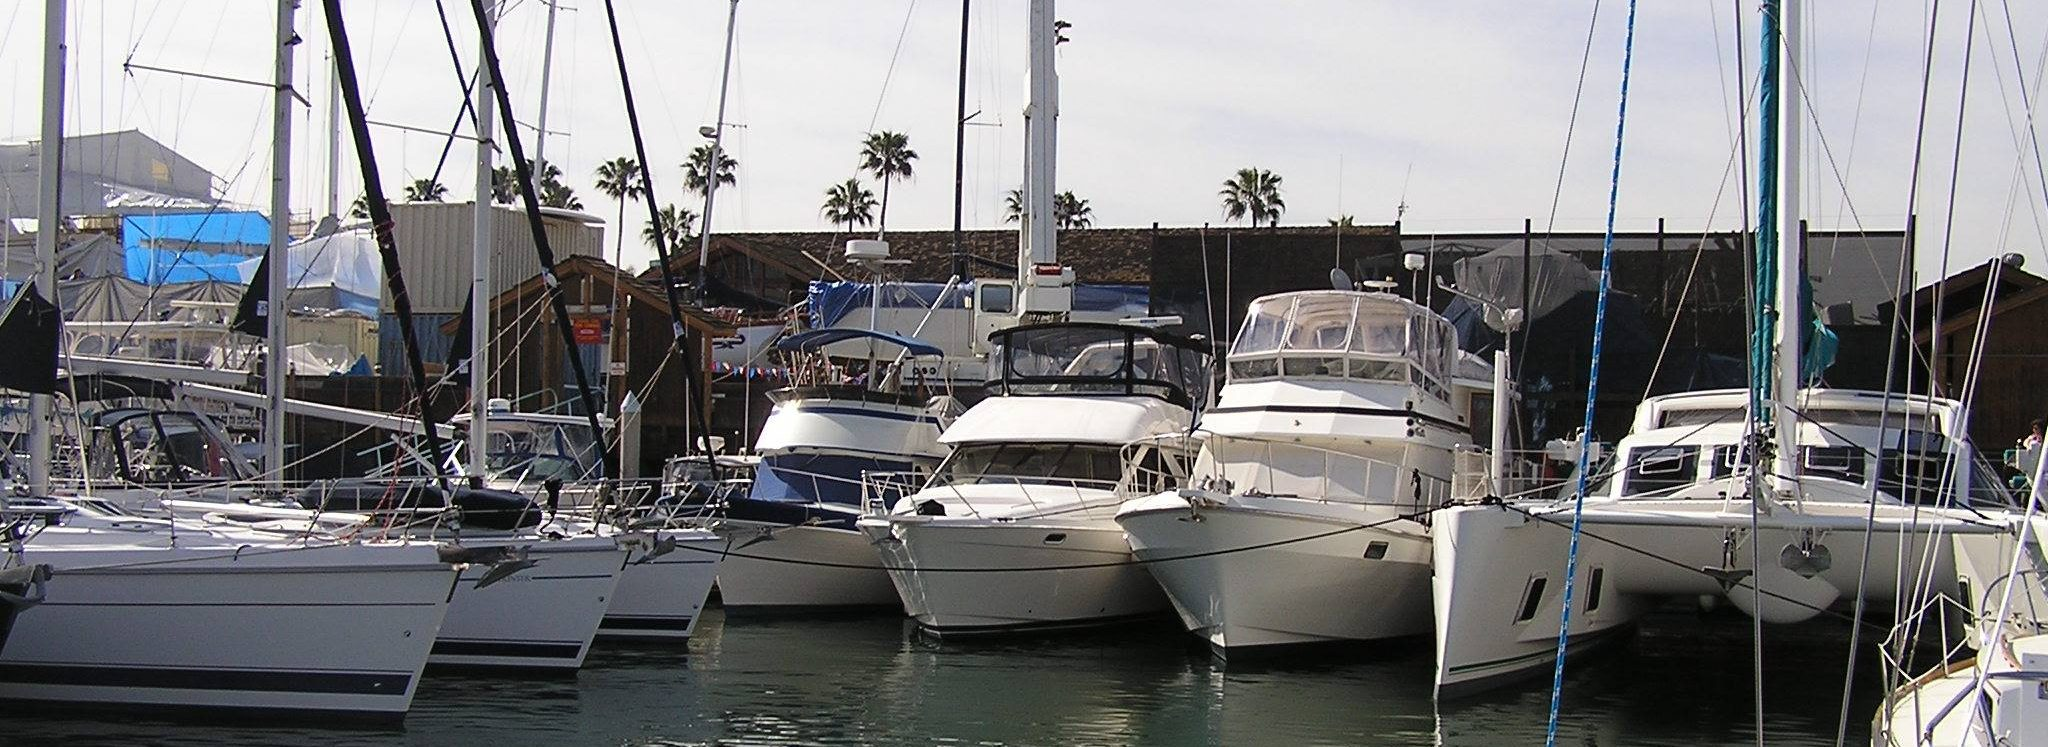 Boat Show3-Yachtfinders